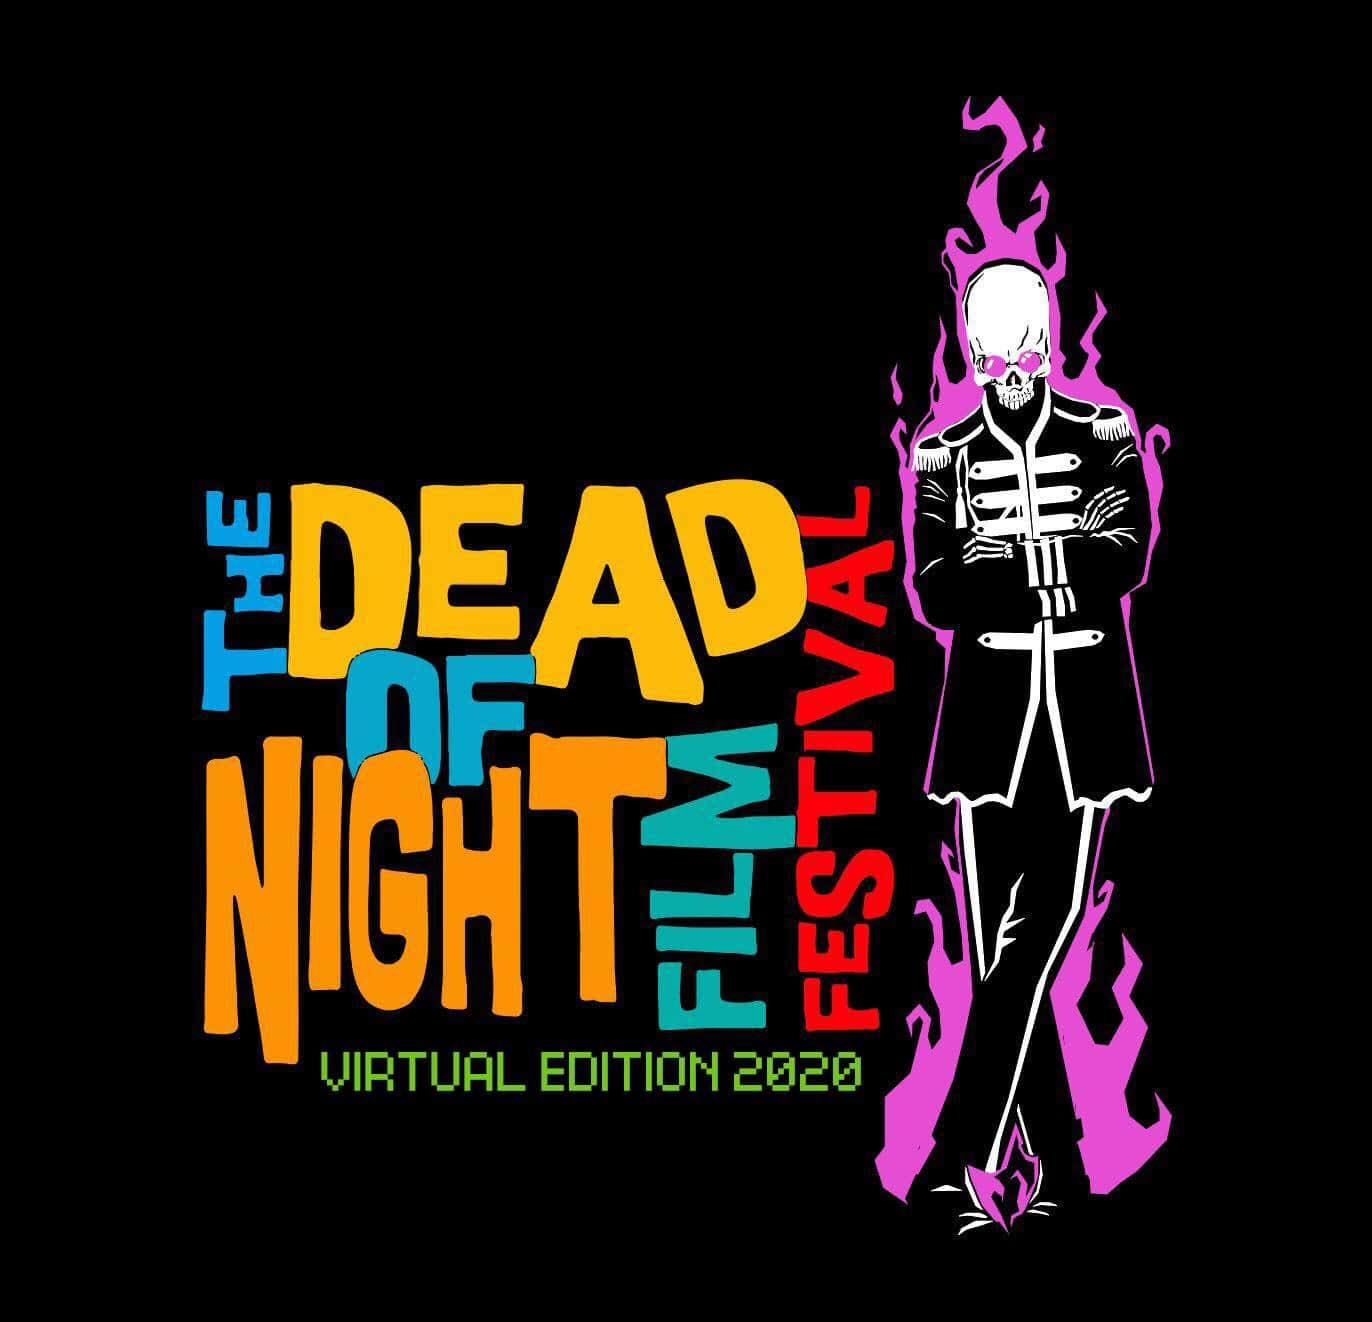 The Dead of Night Film Festival Virtual Edition 2020